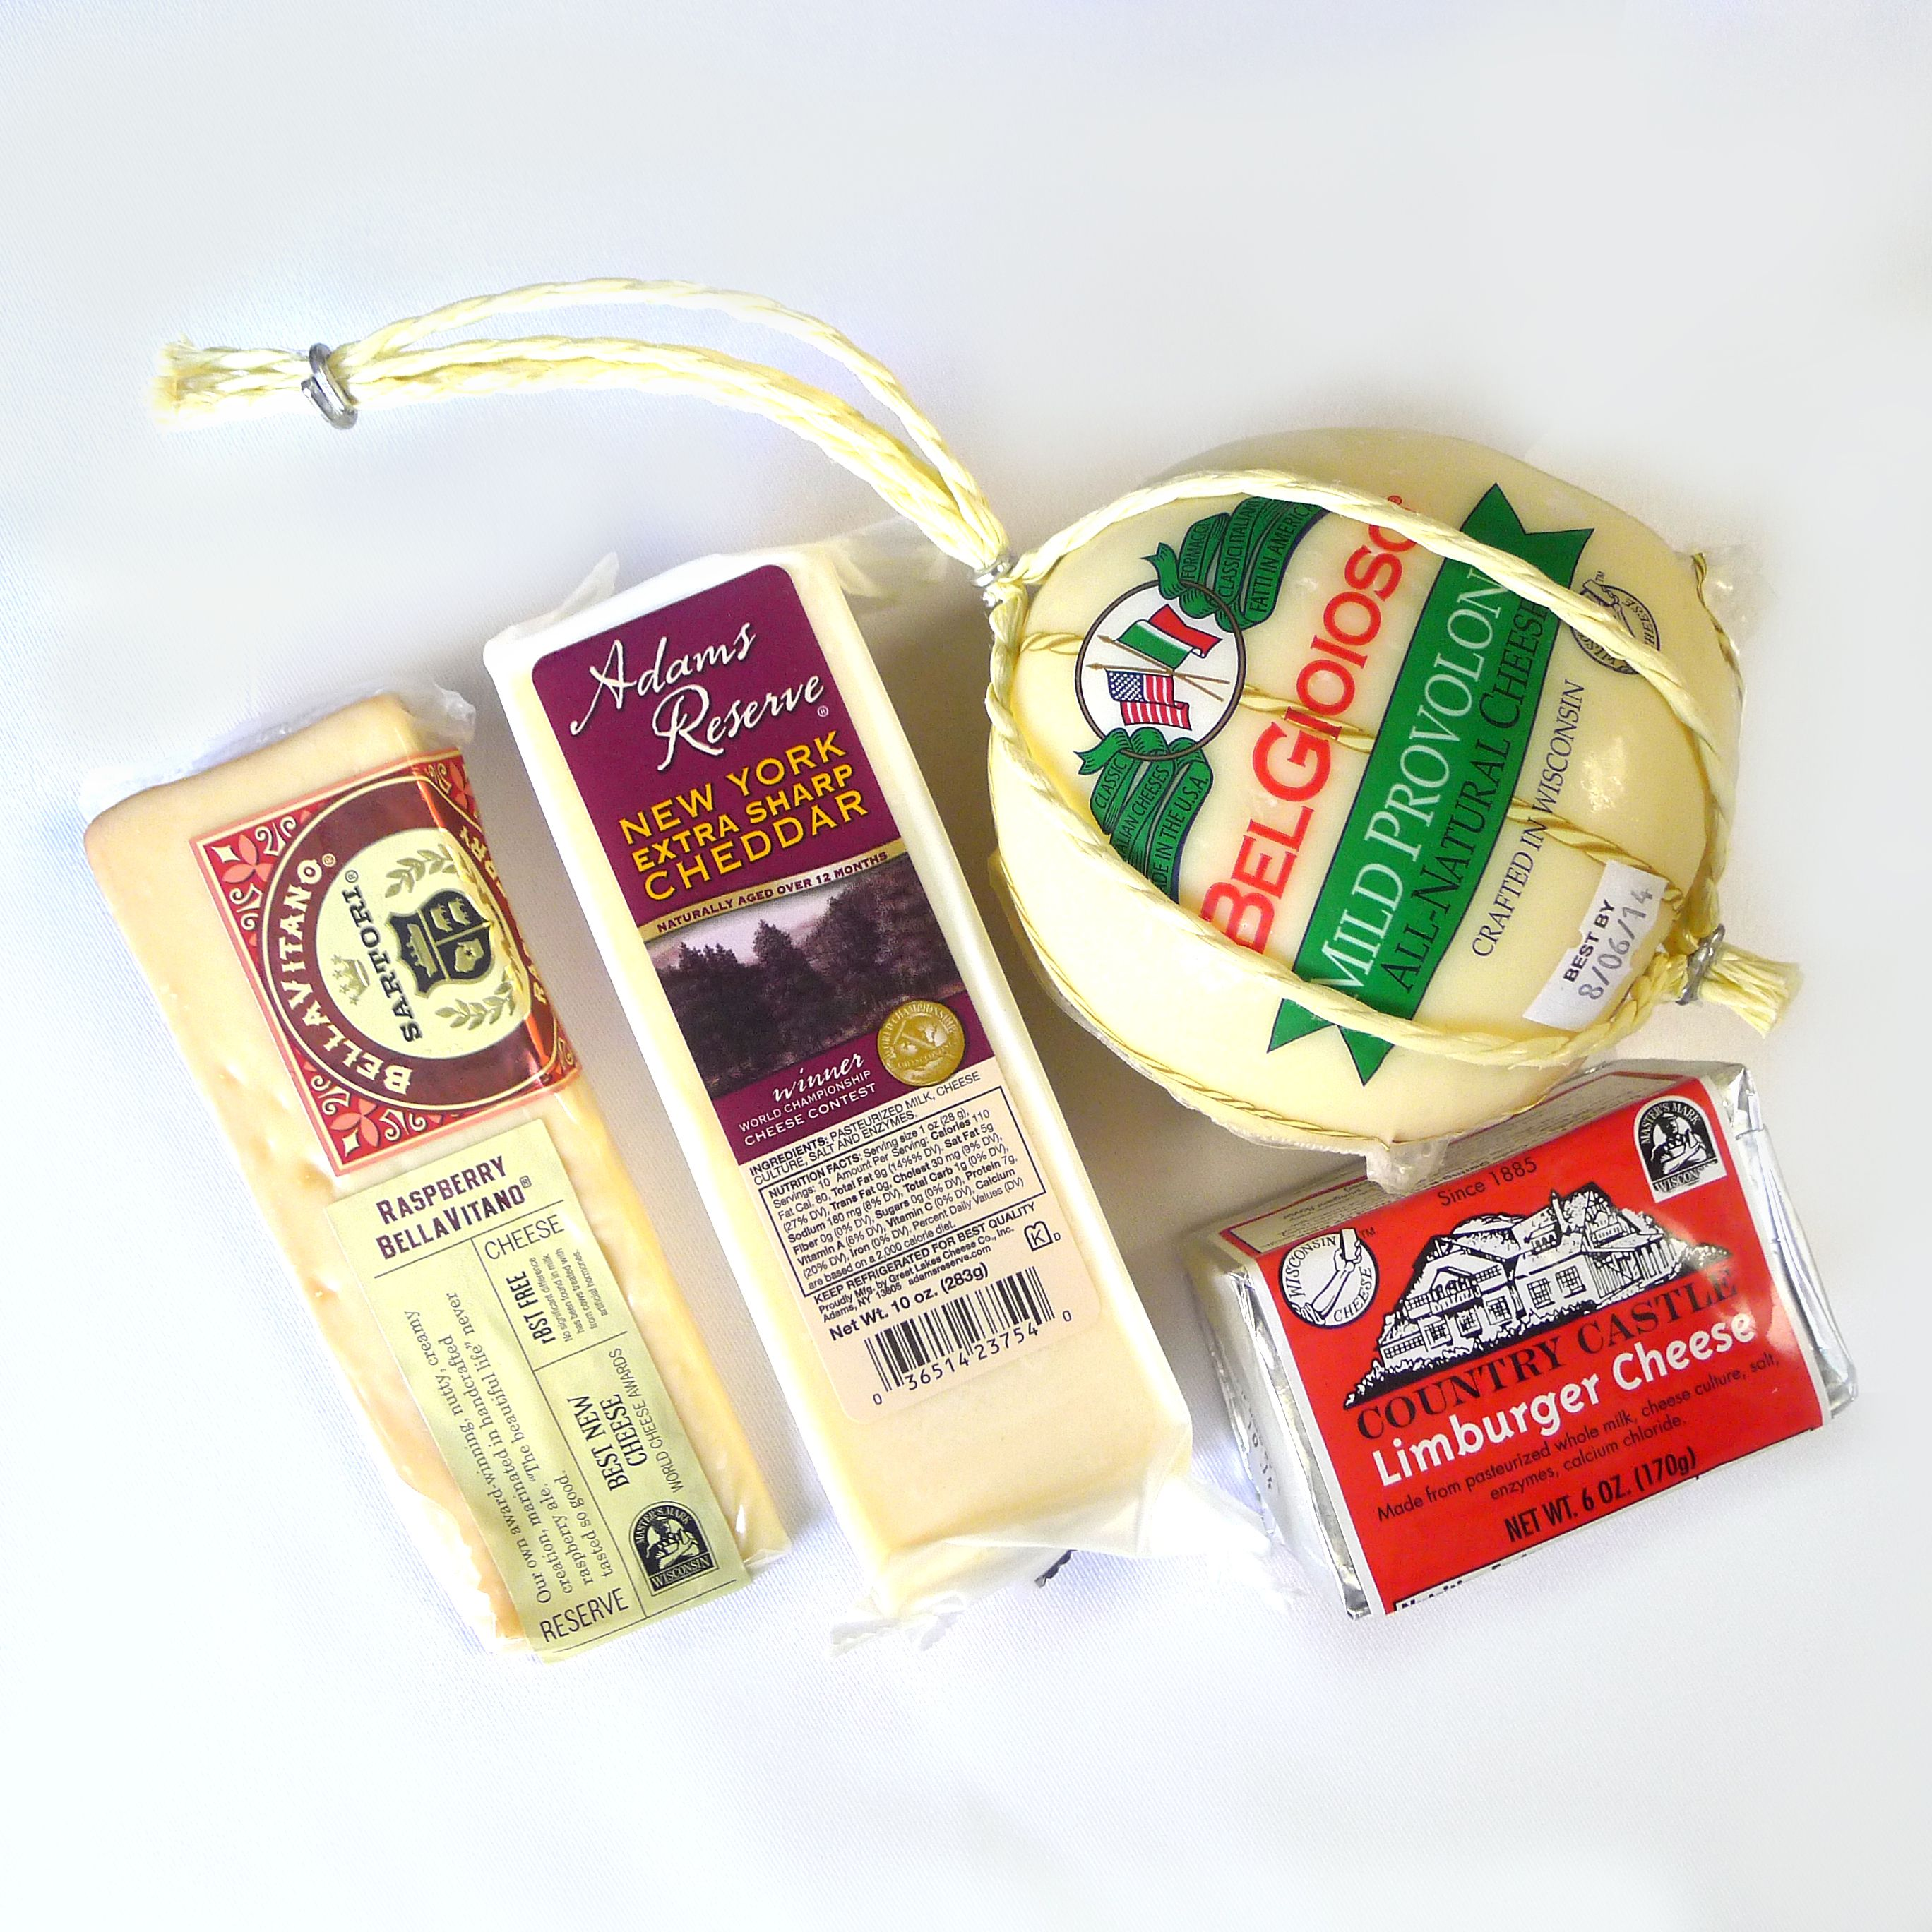 The November Cheese of the Month selections are: Adam's